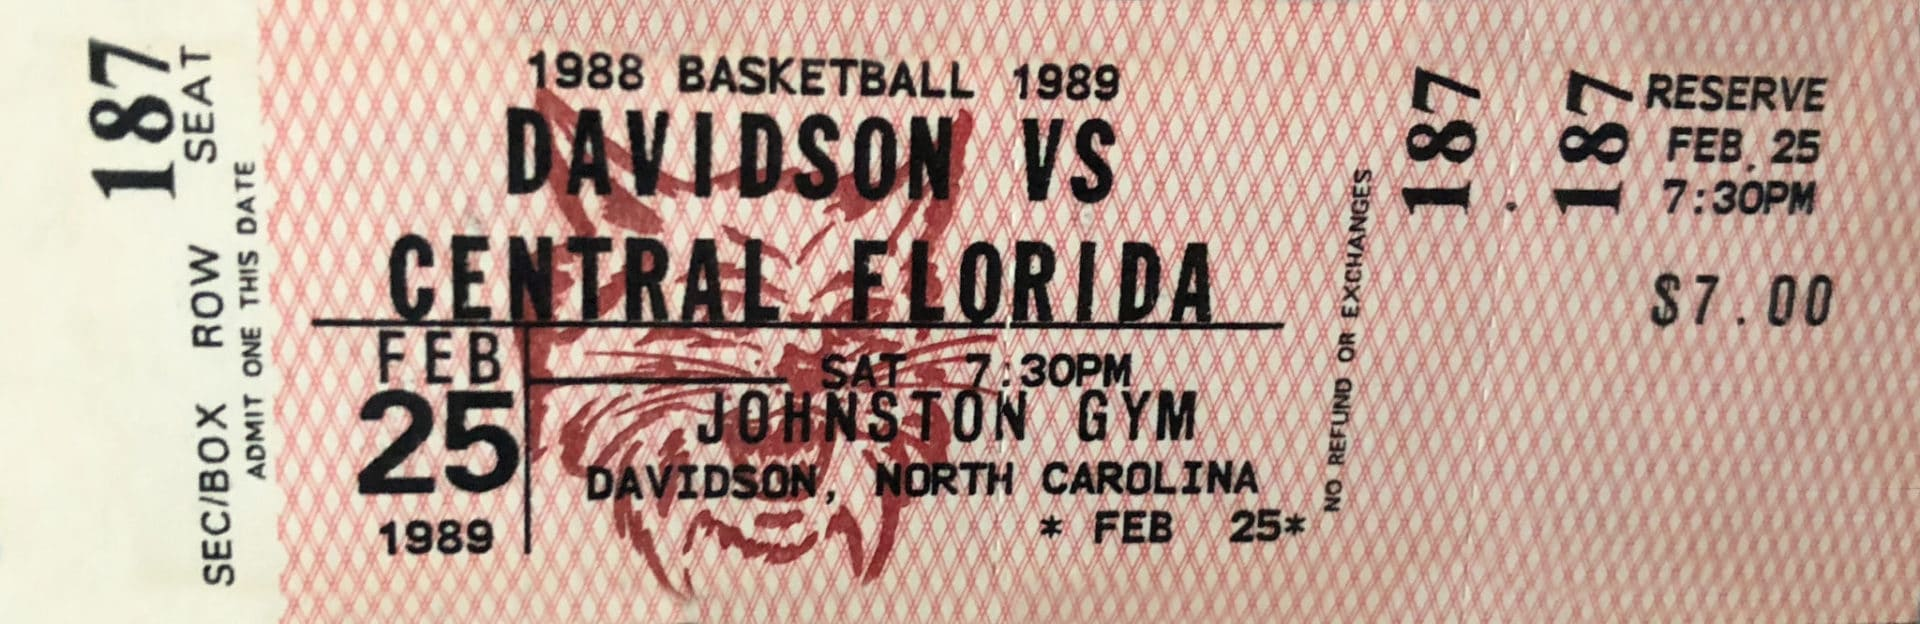 1989Basketballticket